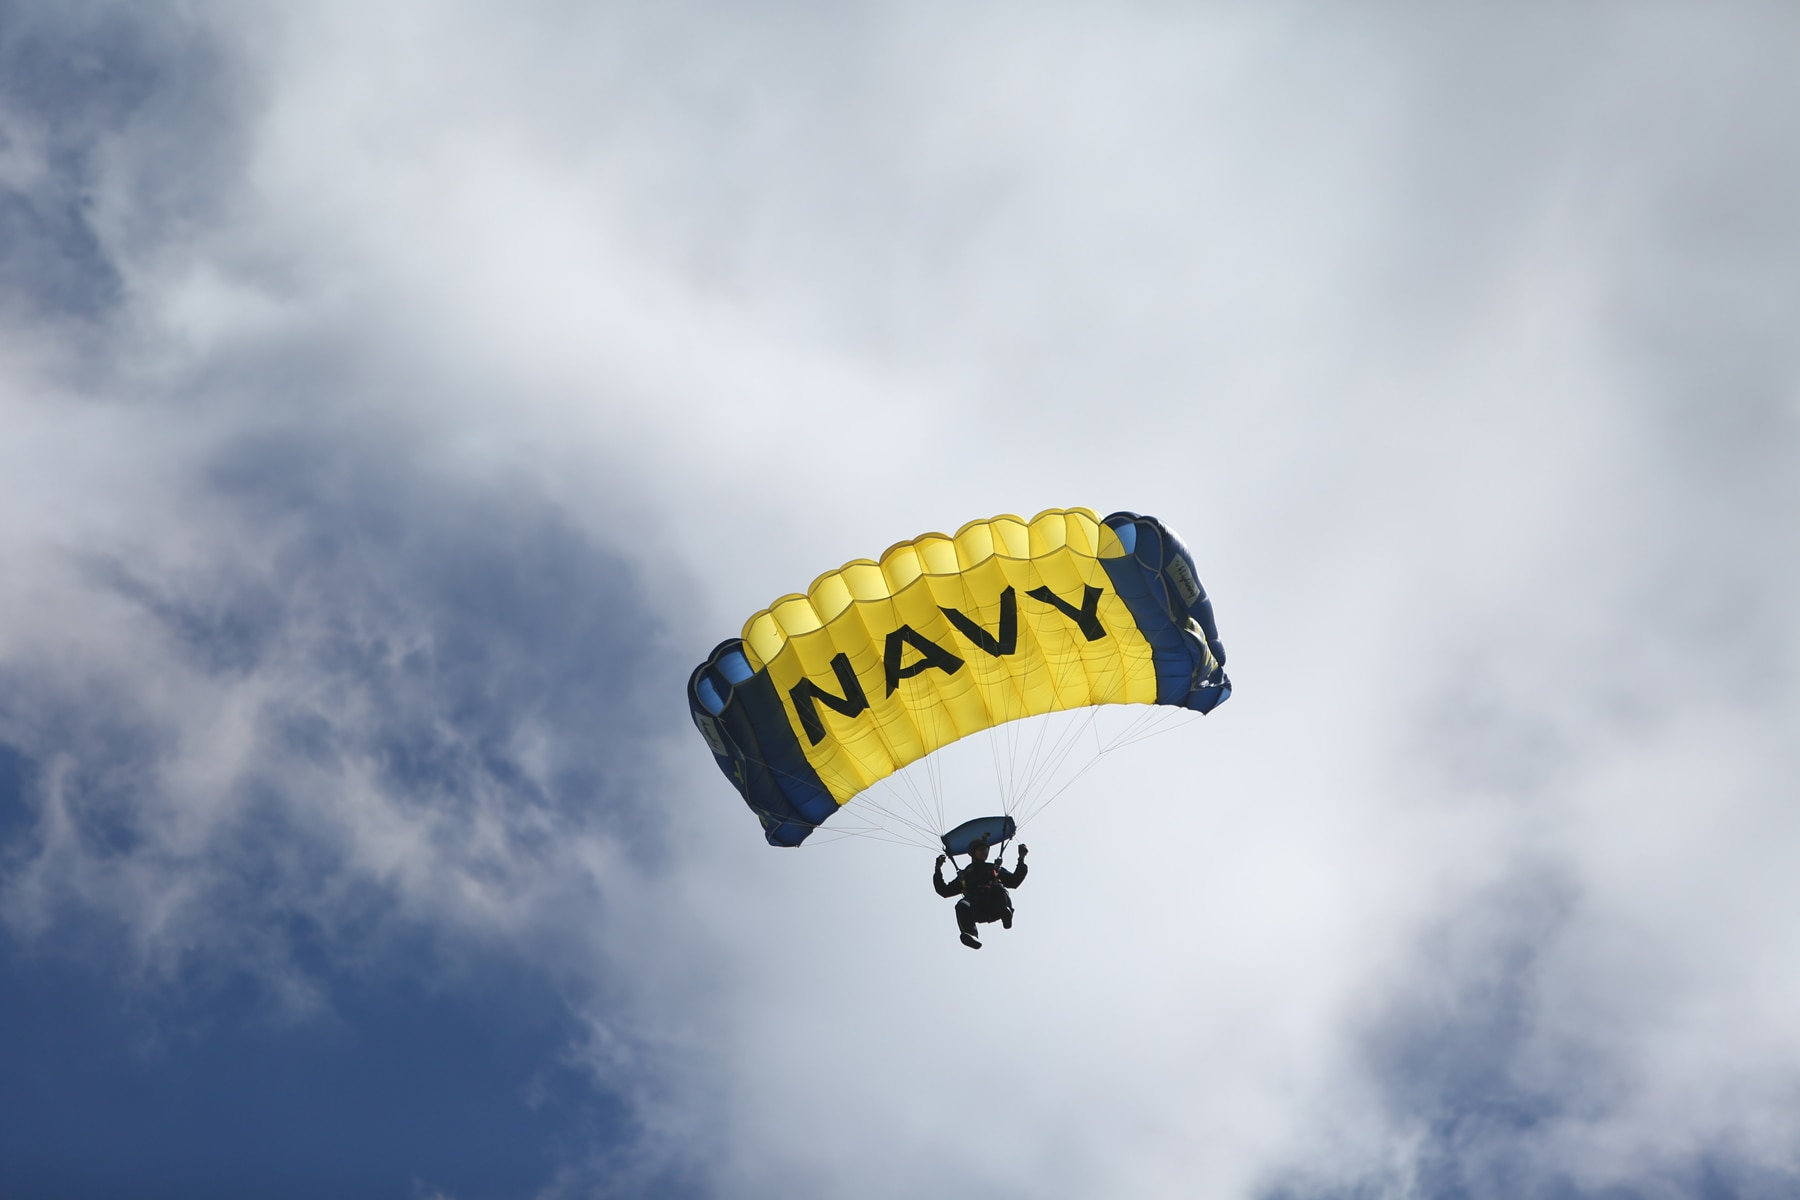 Navy Parachutist Dies in Fleet Week Crash